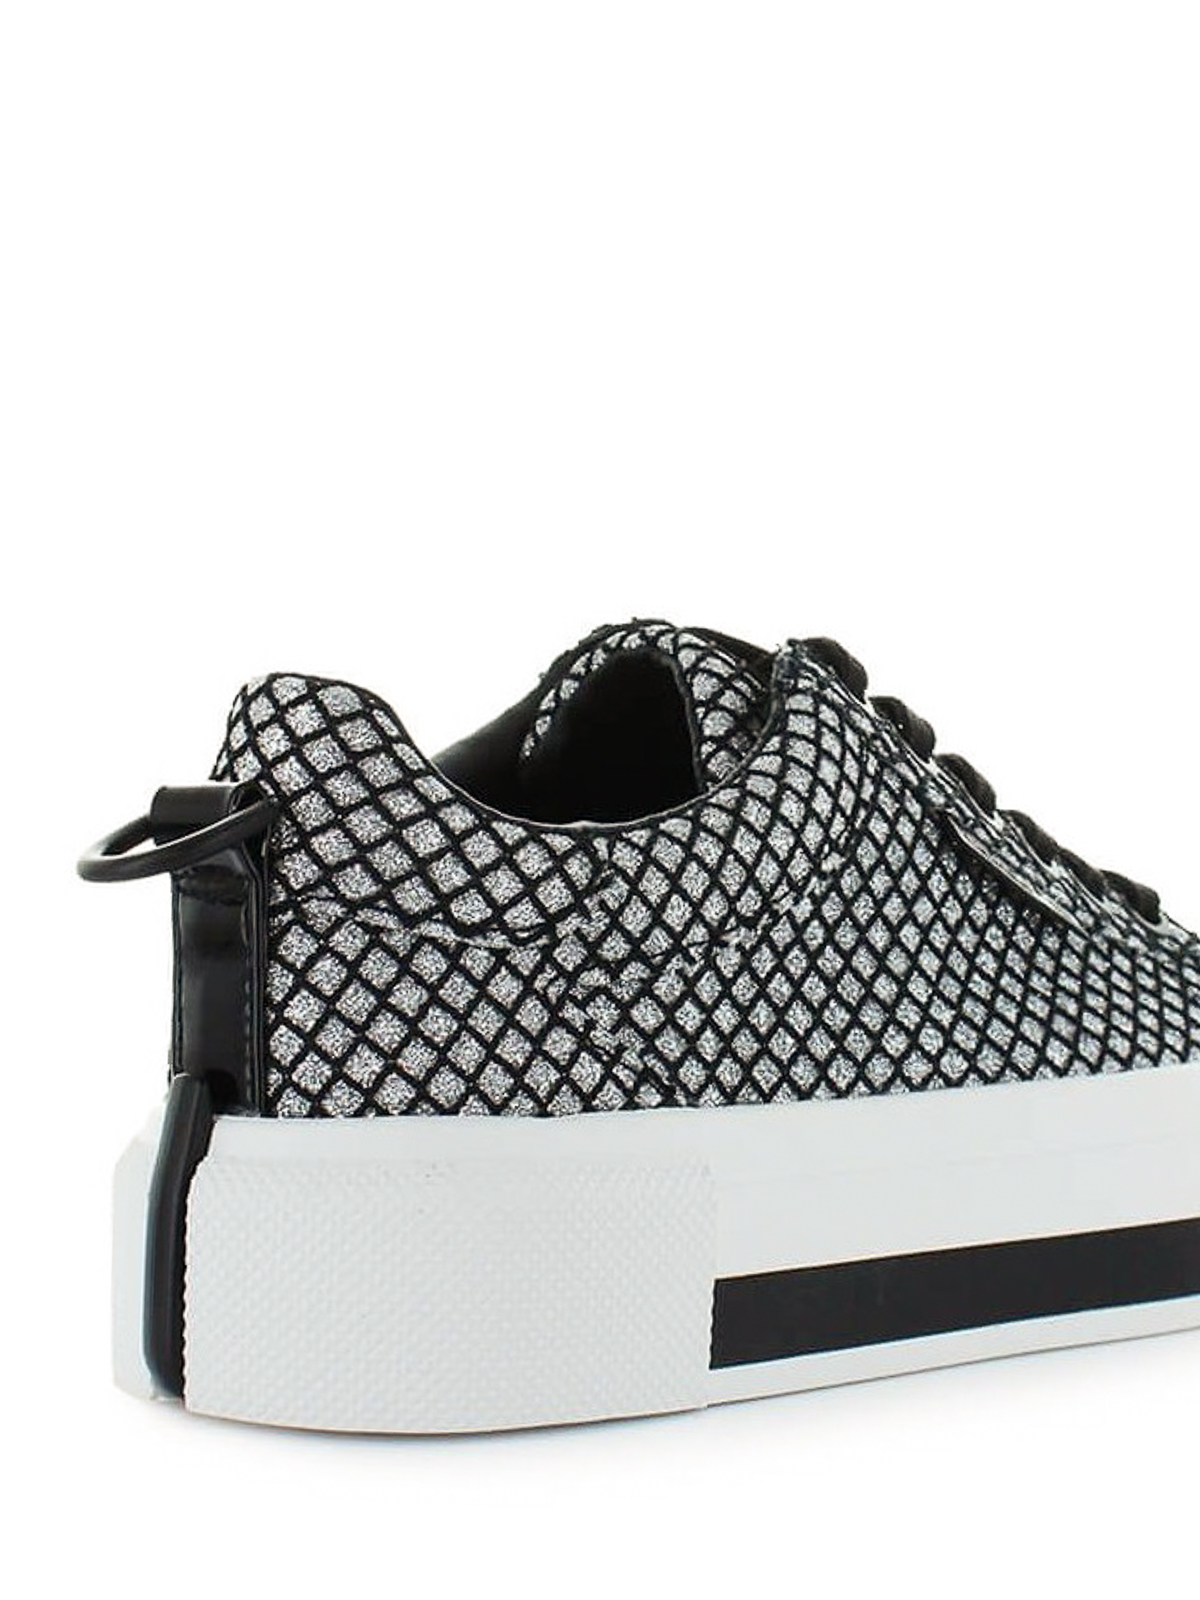 Kendall + Kylie - Tyler mesh and